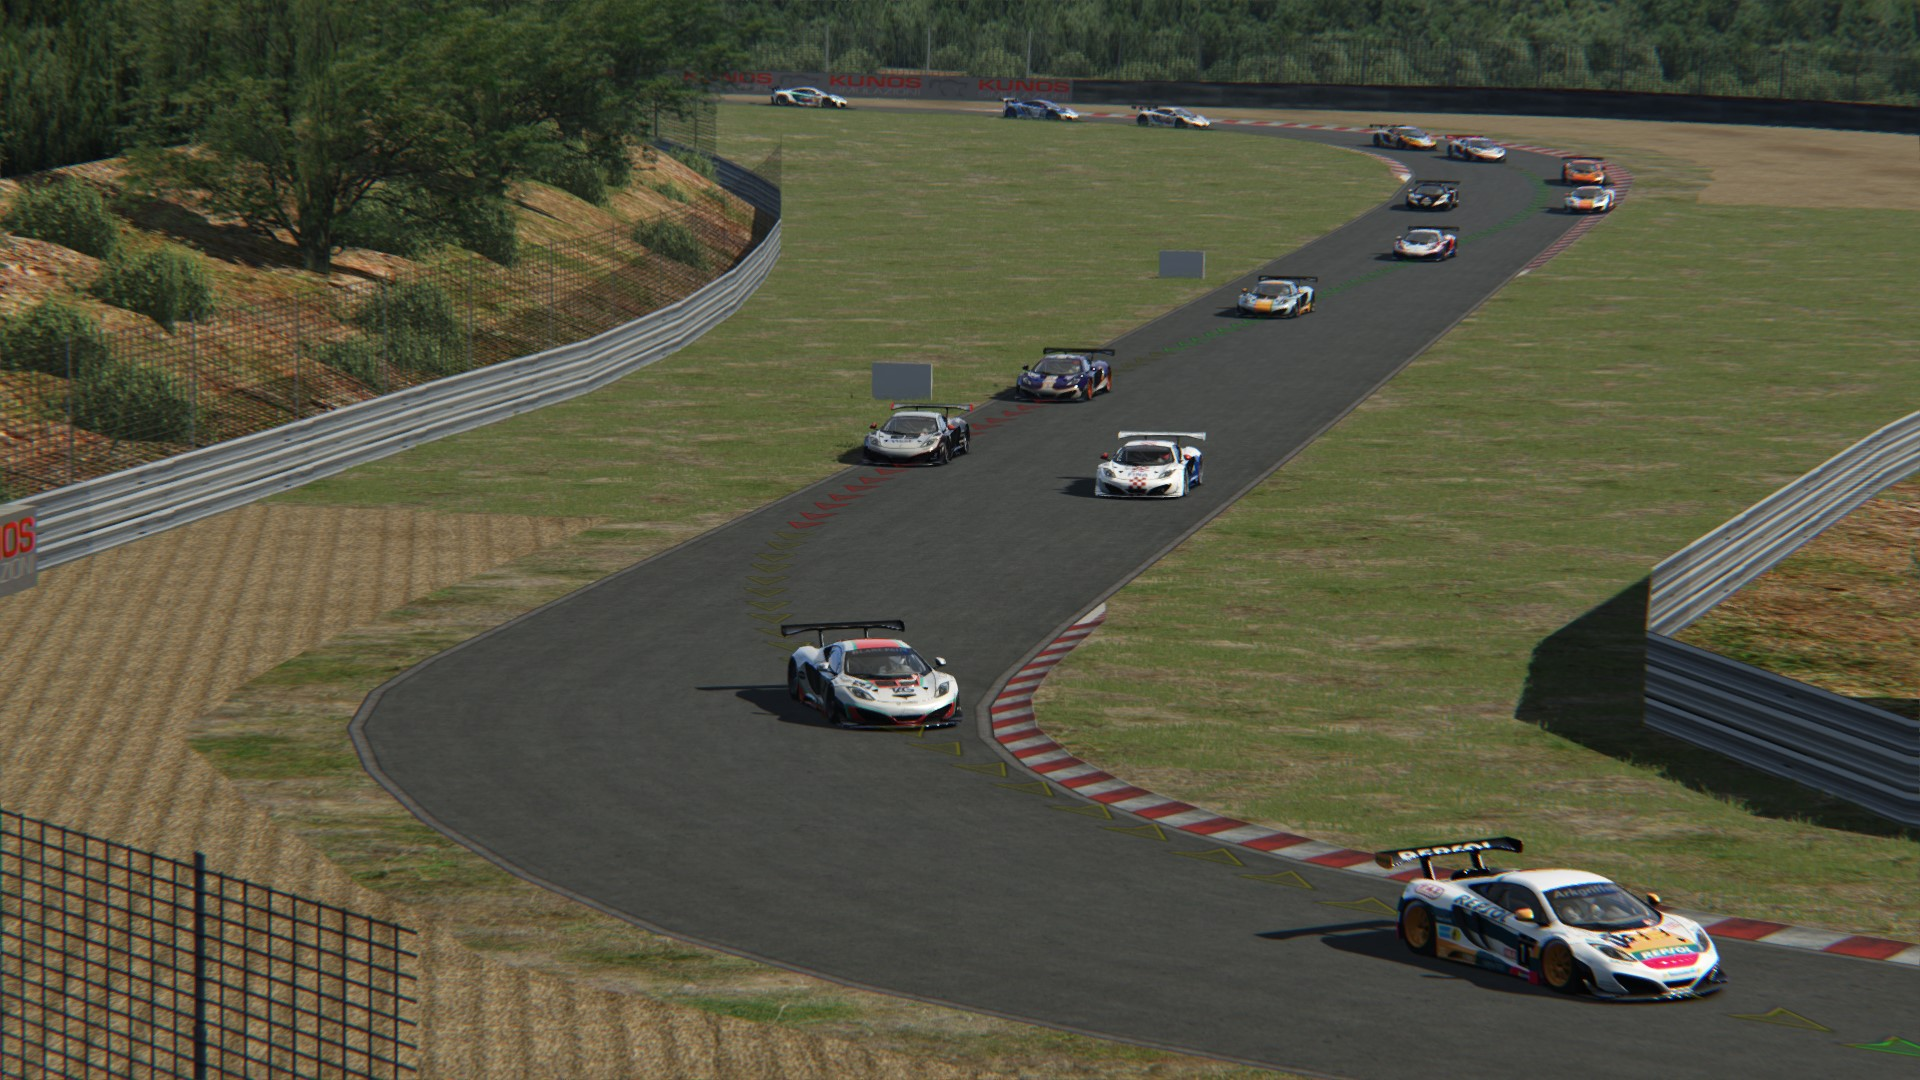 Screenshot_mclaren_mp412c_gt3_sportsland_sugo_7-4-116-9-59-48.jpg